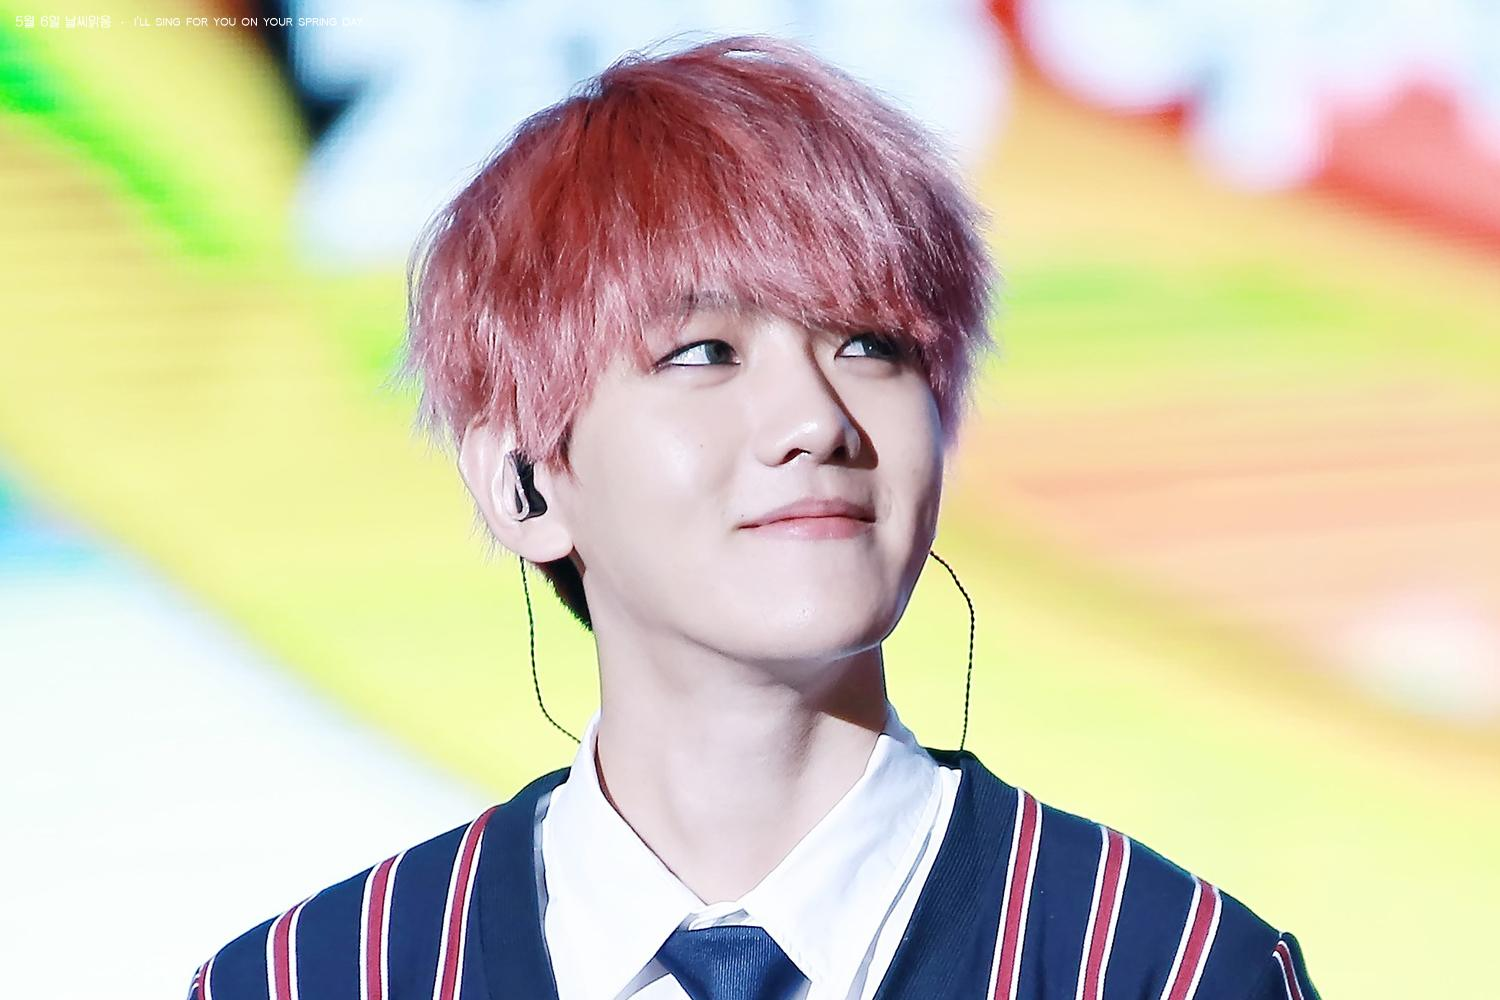 EXO Baekhyun Just Changed His Hairstyle Completely Koreaboo